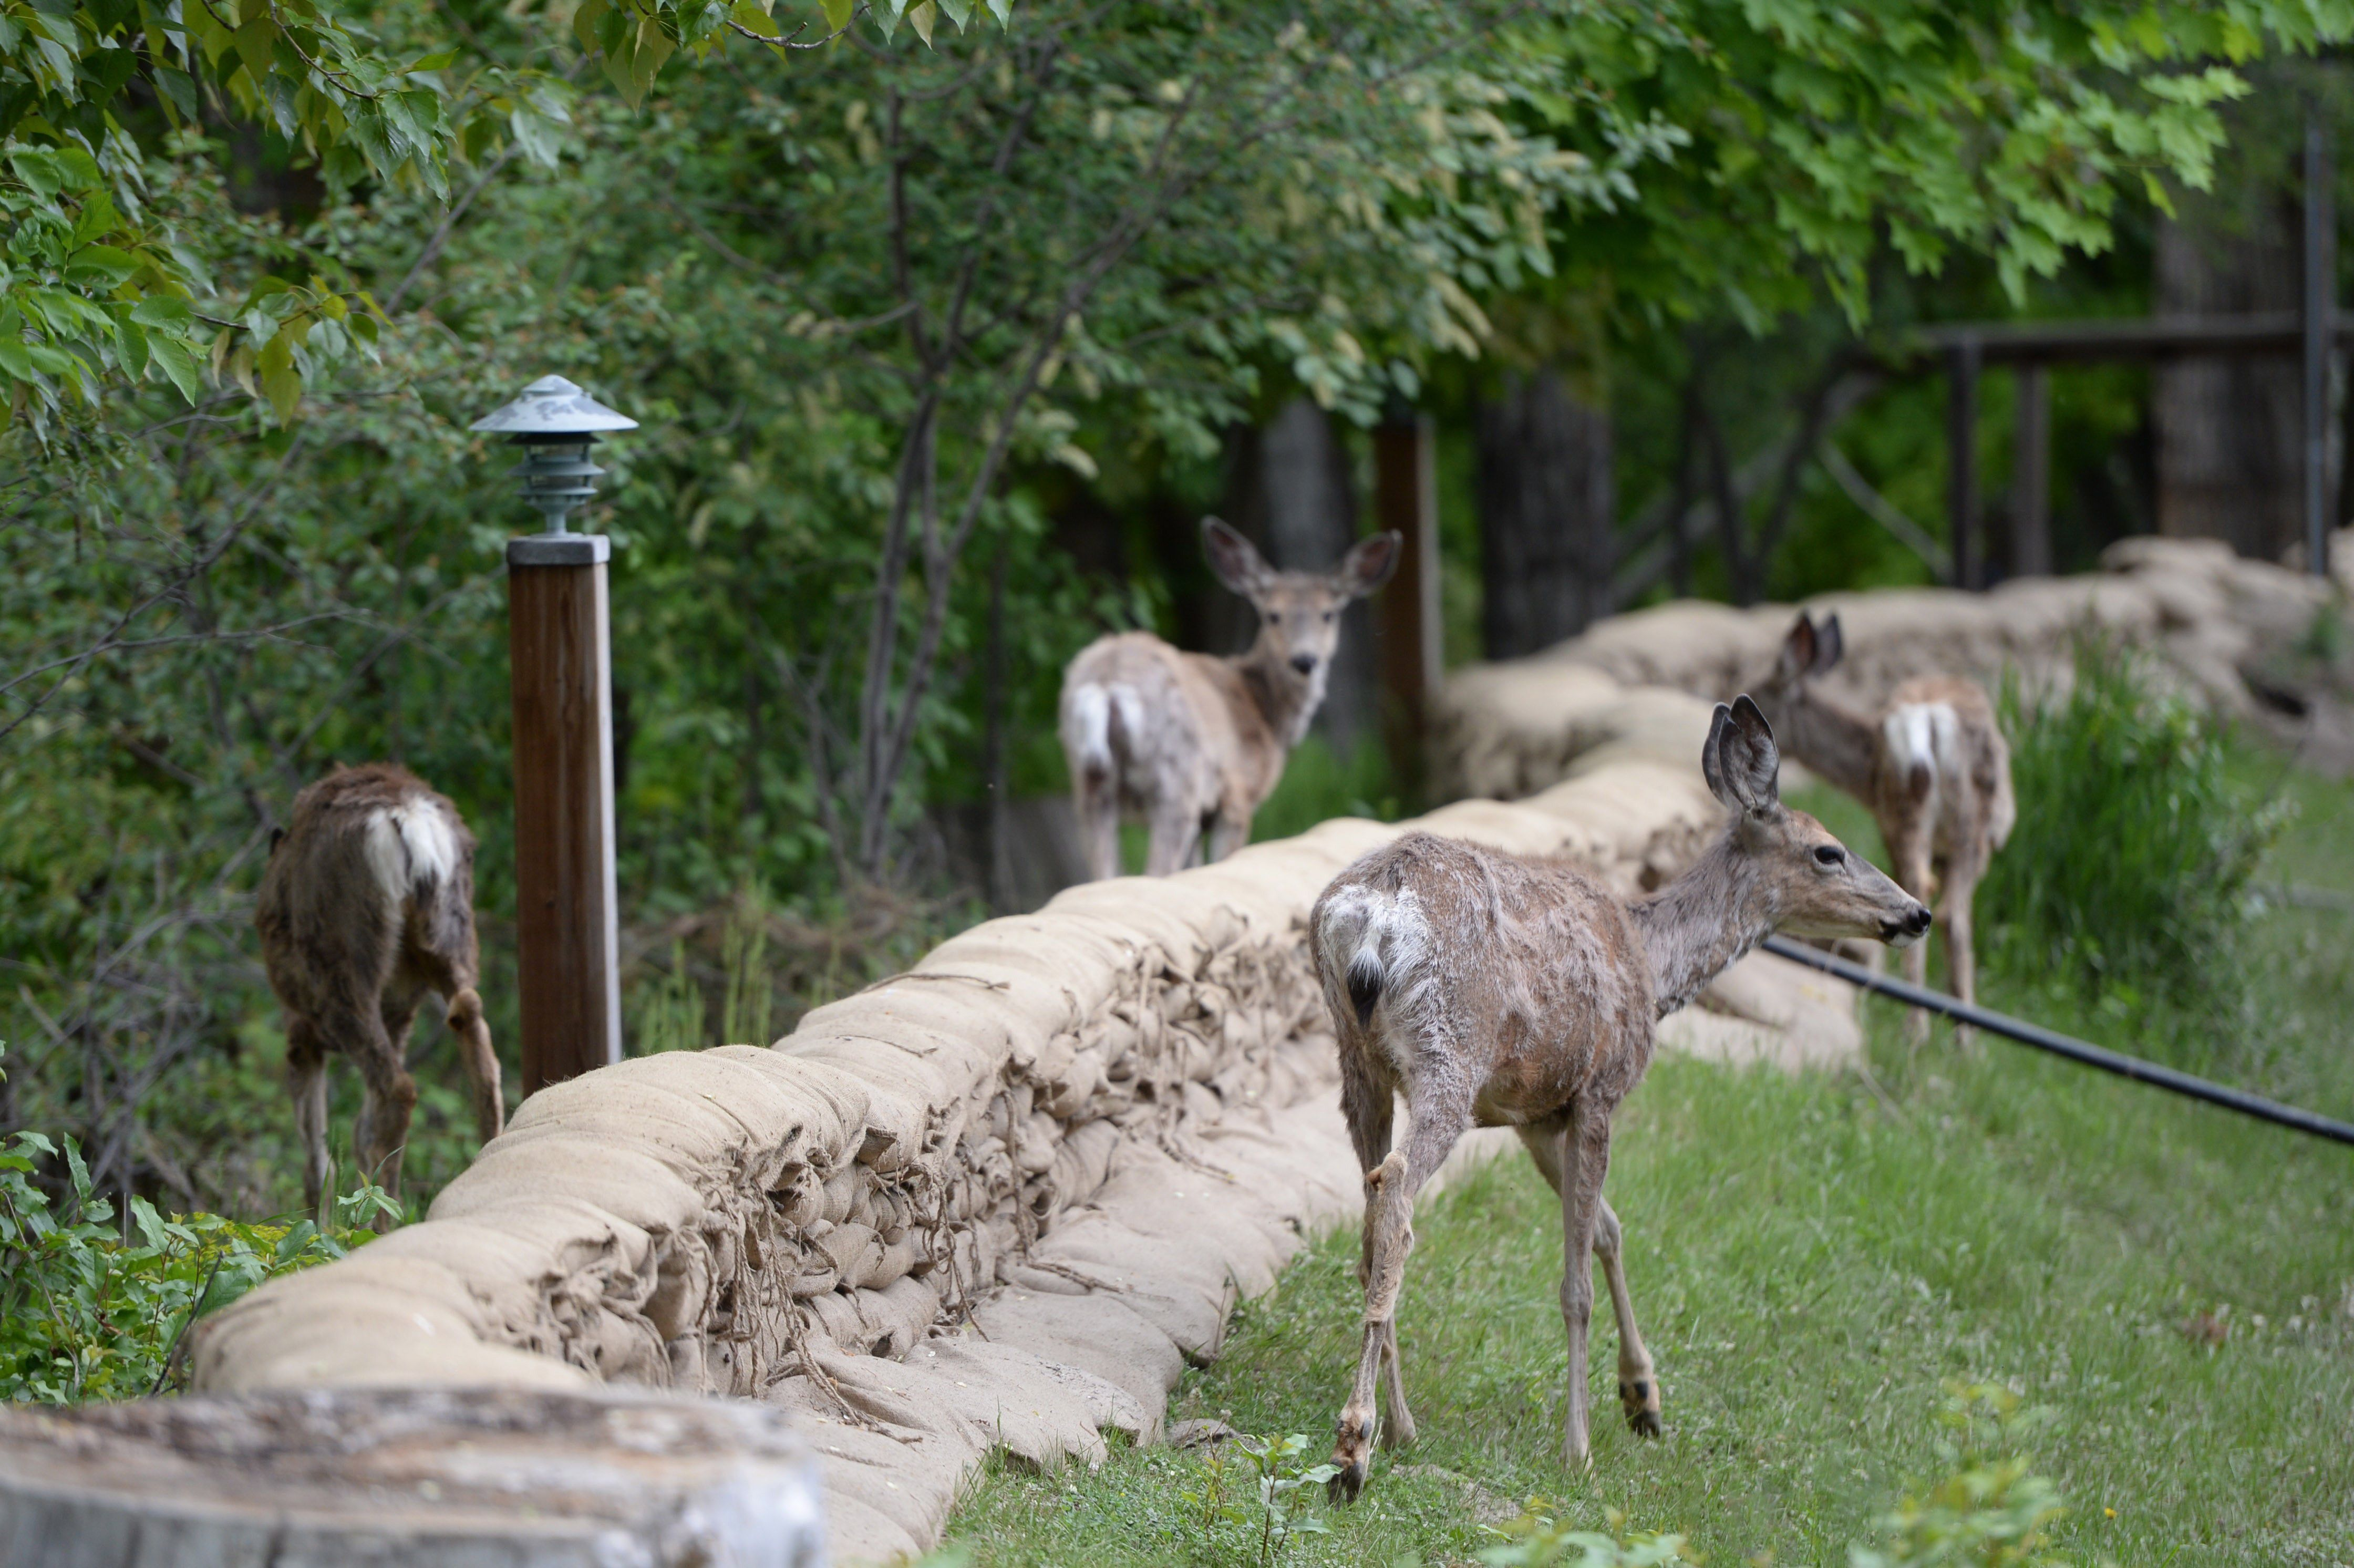 Homeowners asked to help Victoria's plan to use contraceptives on urban deer